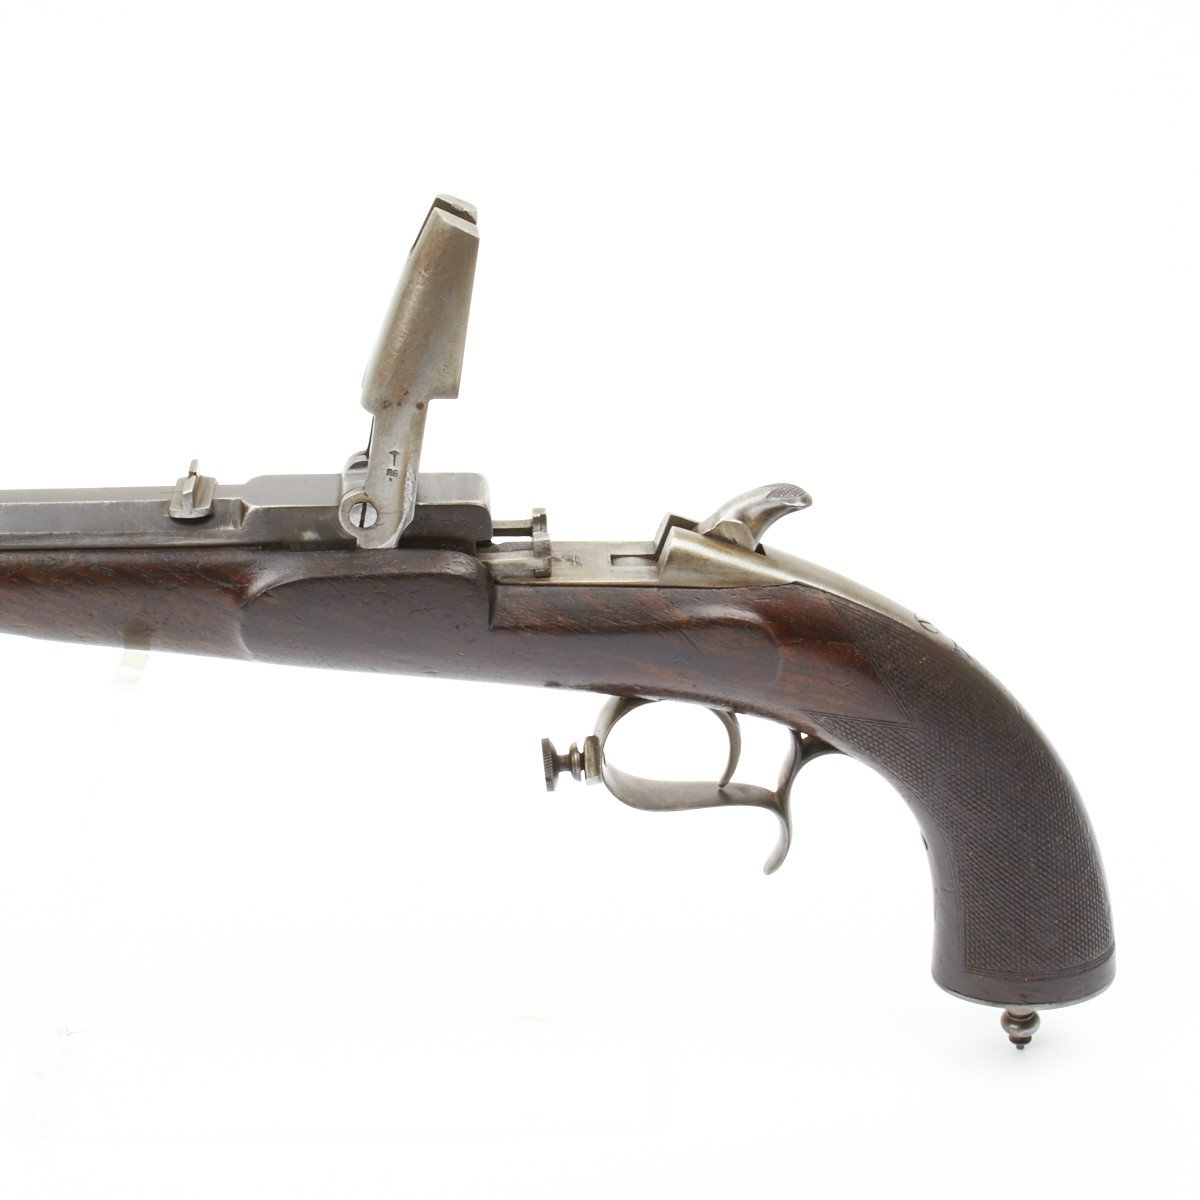 Original Flobert System Single Shot Target Pistol- Circa 1870